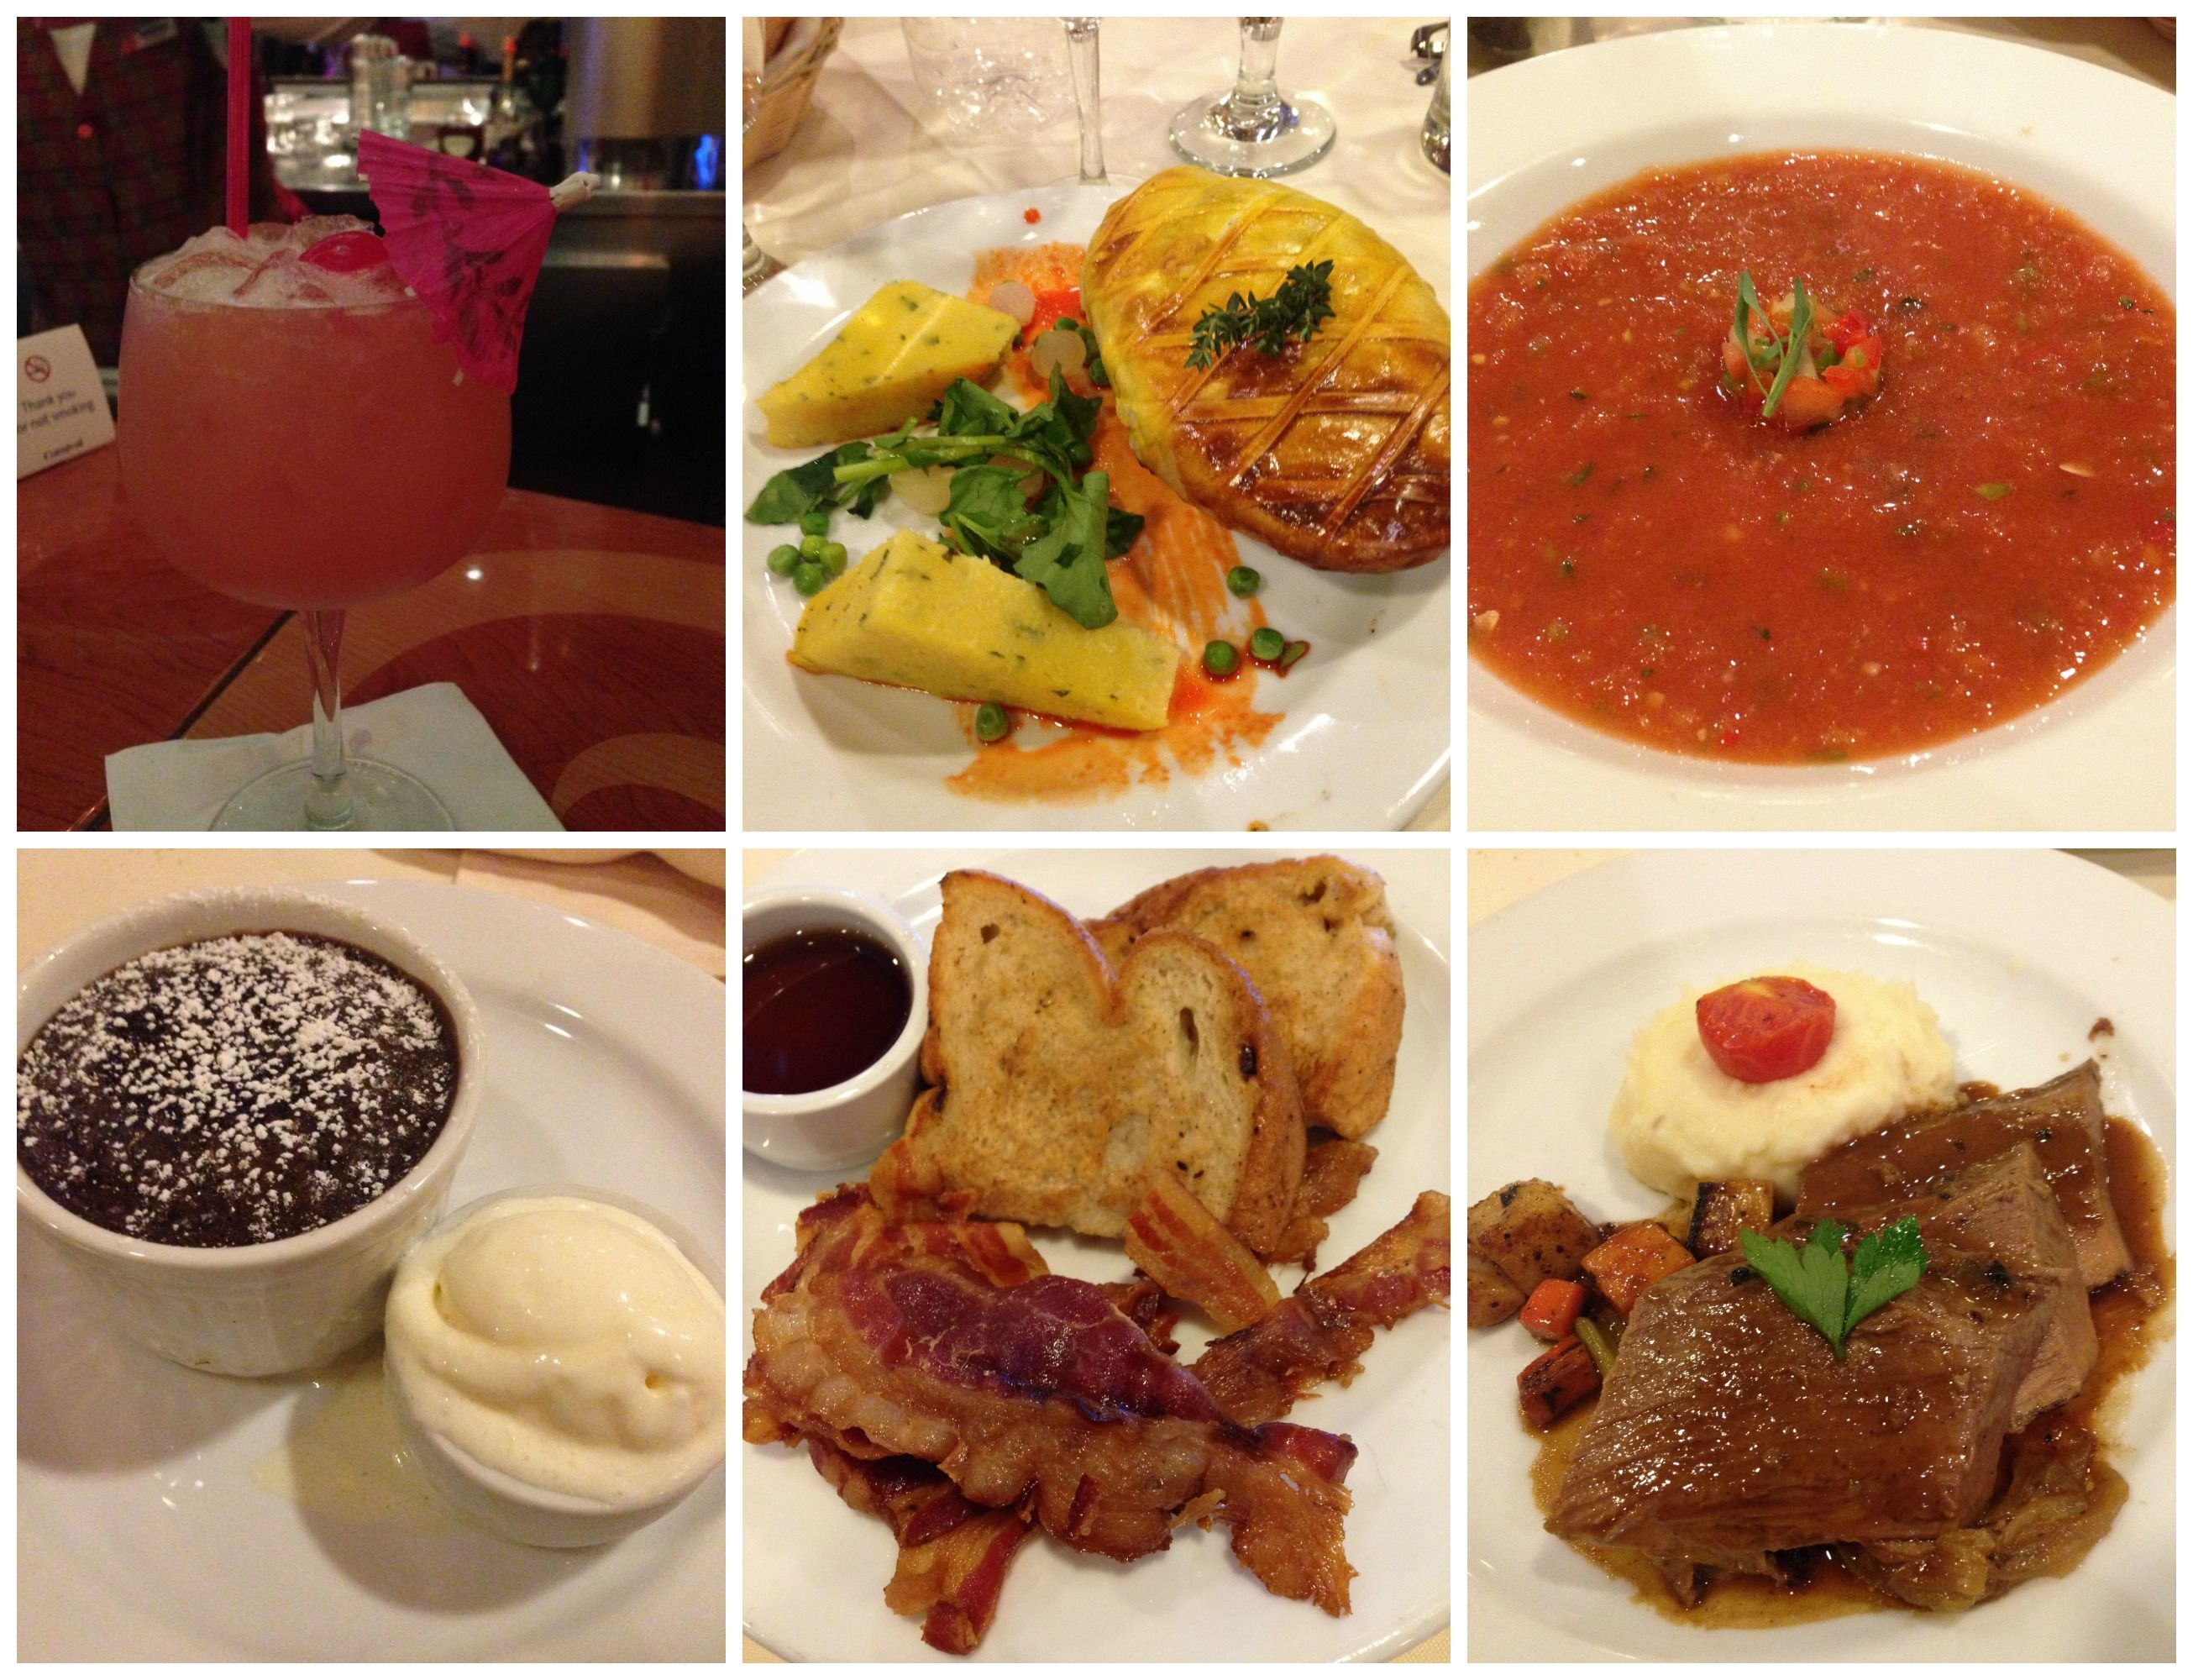 Carnival Imagination Food (With Images)